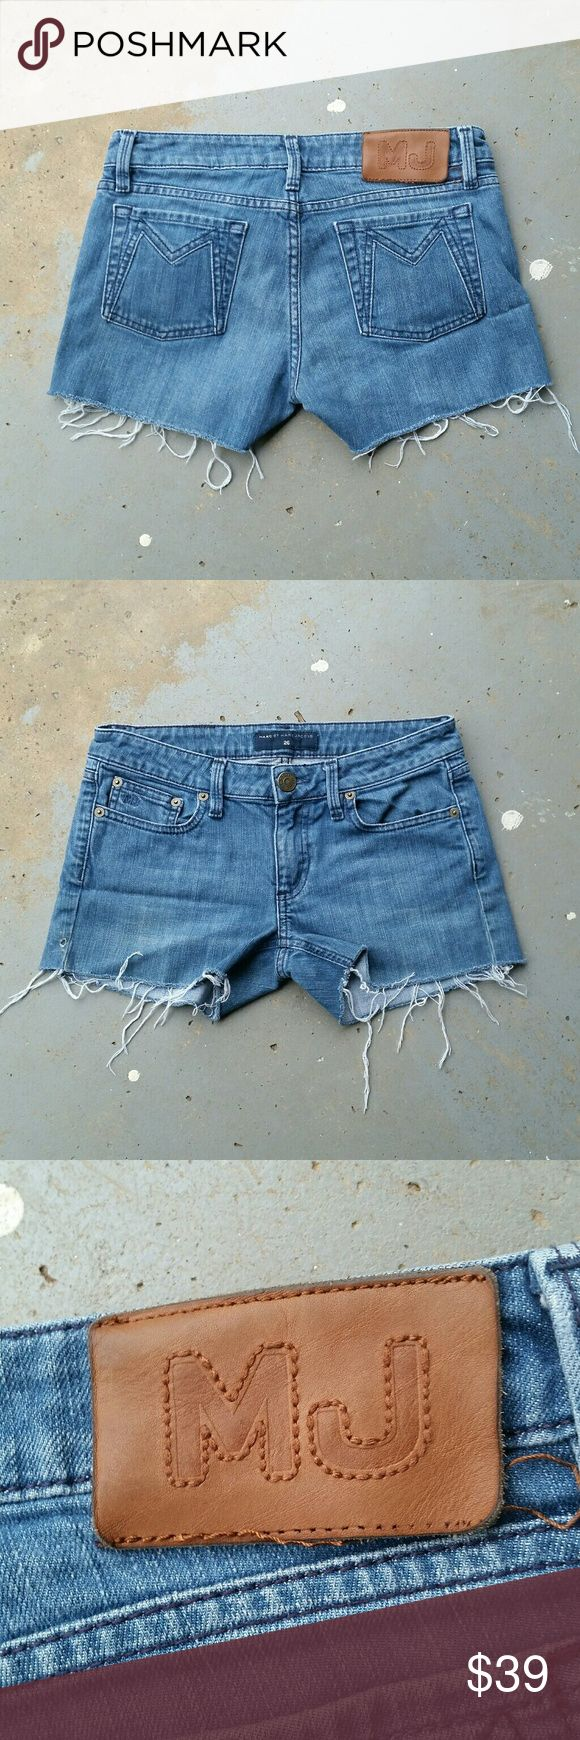 """MARC JACOBS CUT OFF JEAN SHORTS Marc Jacobs cut off jean shorts. 98% cotton. 2% elastane. 26"""" waist.  7"""" rise.  2.5"""" inseam. Bottom of back leather tag is loose.  (#546) Marc by Marc Jacobs Shorts Jean Shorts"""